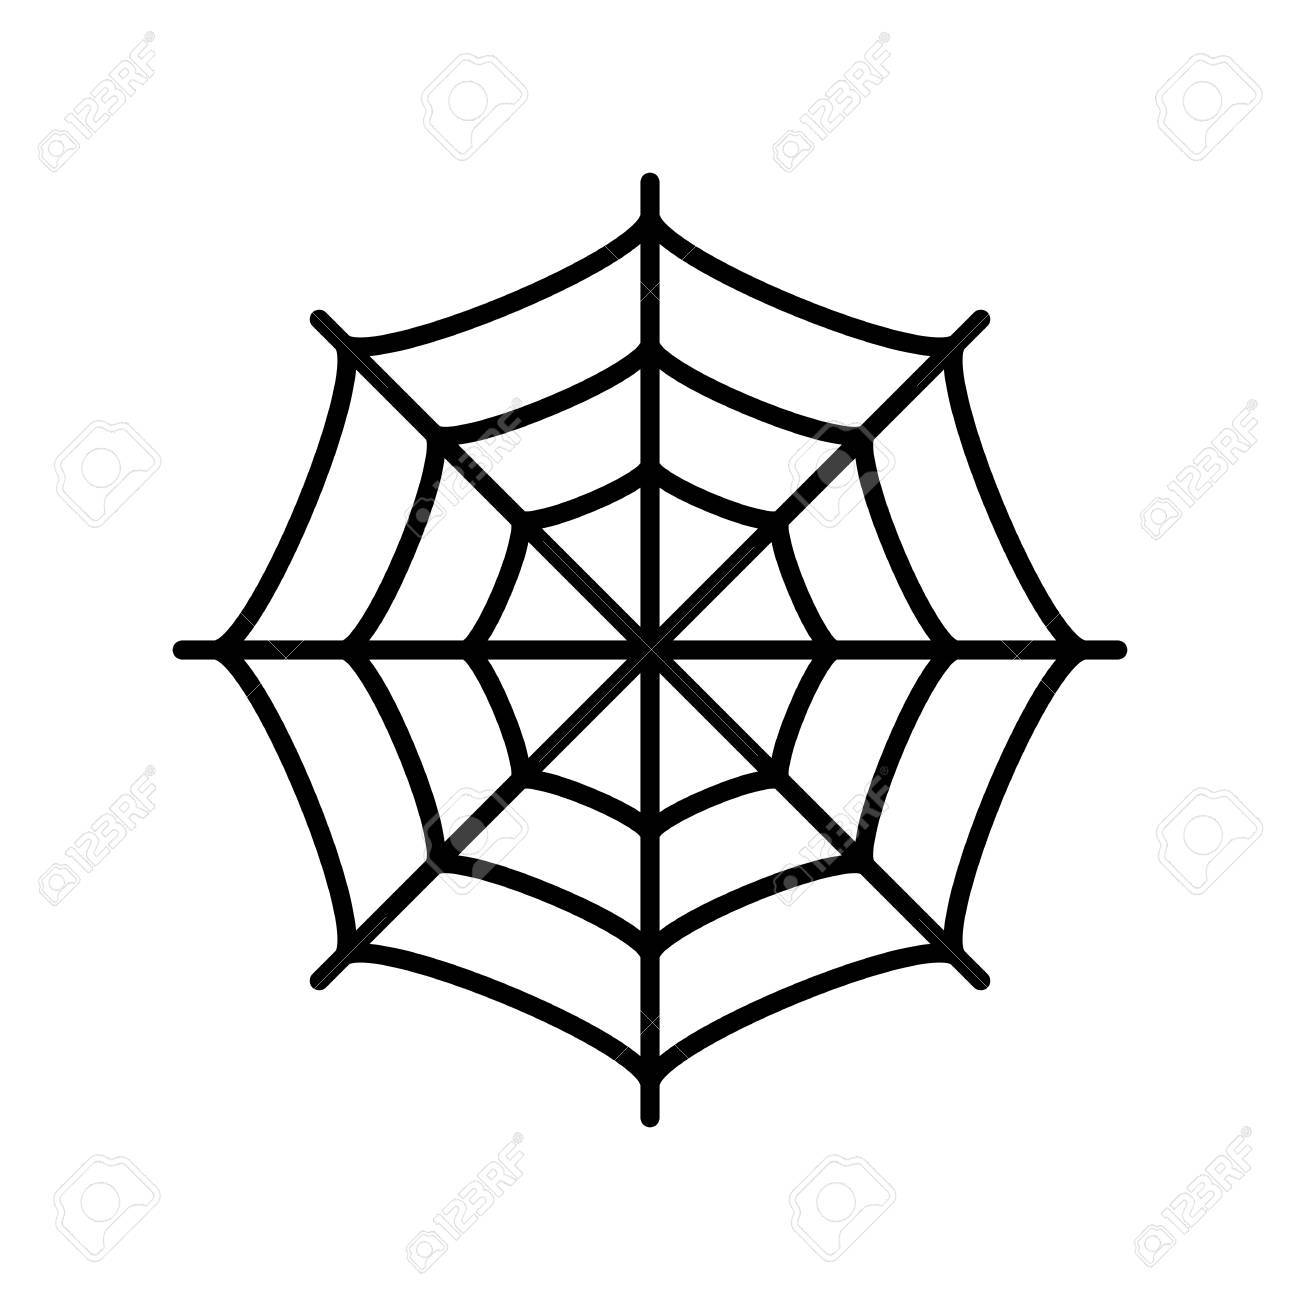 spider web vector icon royalty free cliparts vectors and stock rh 123rf com spider web vector eps spider web vector download